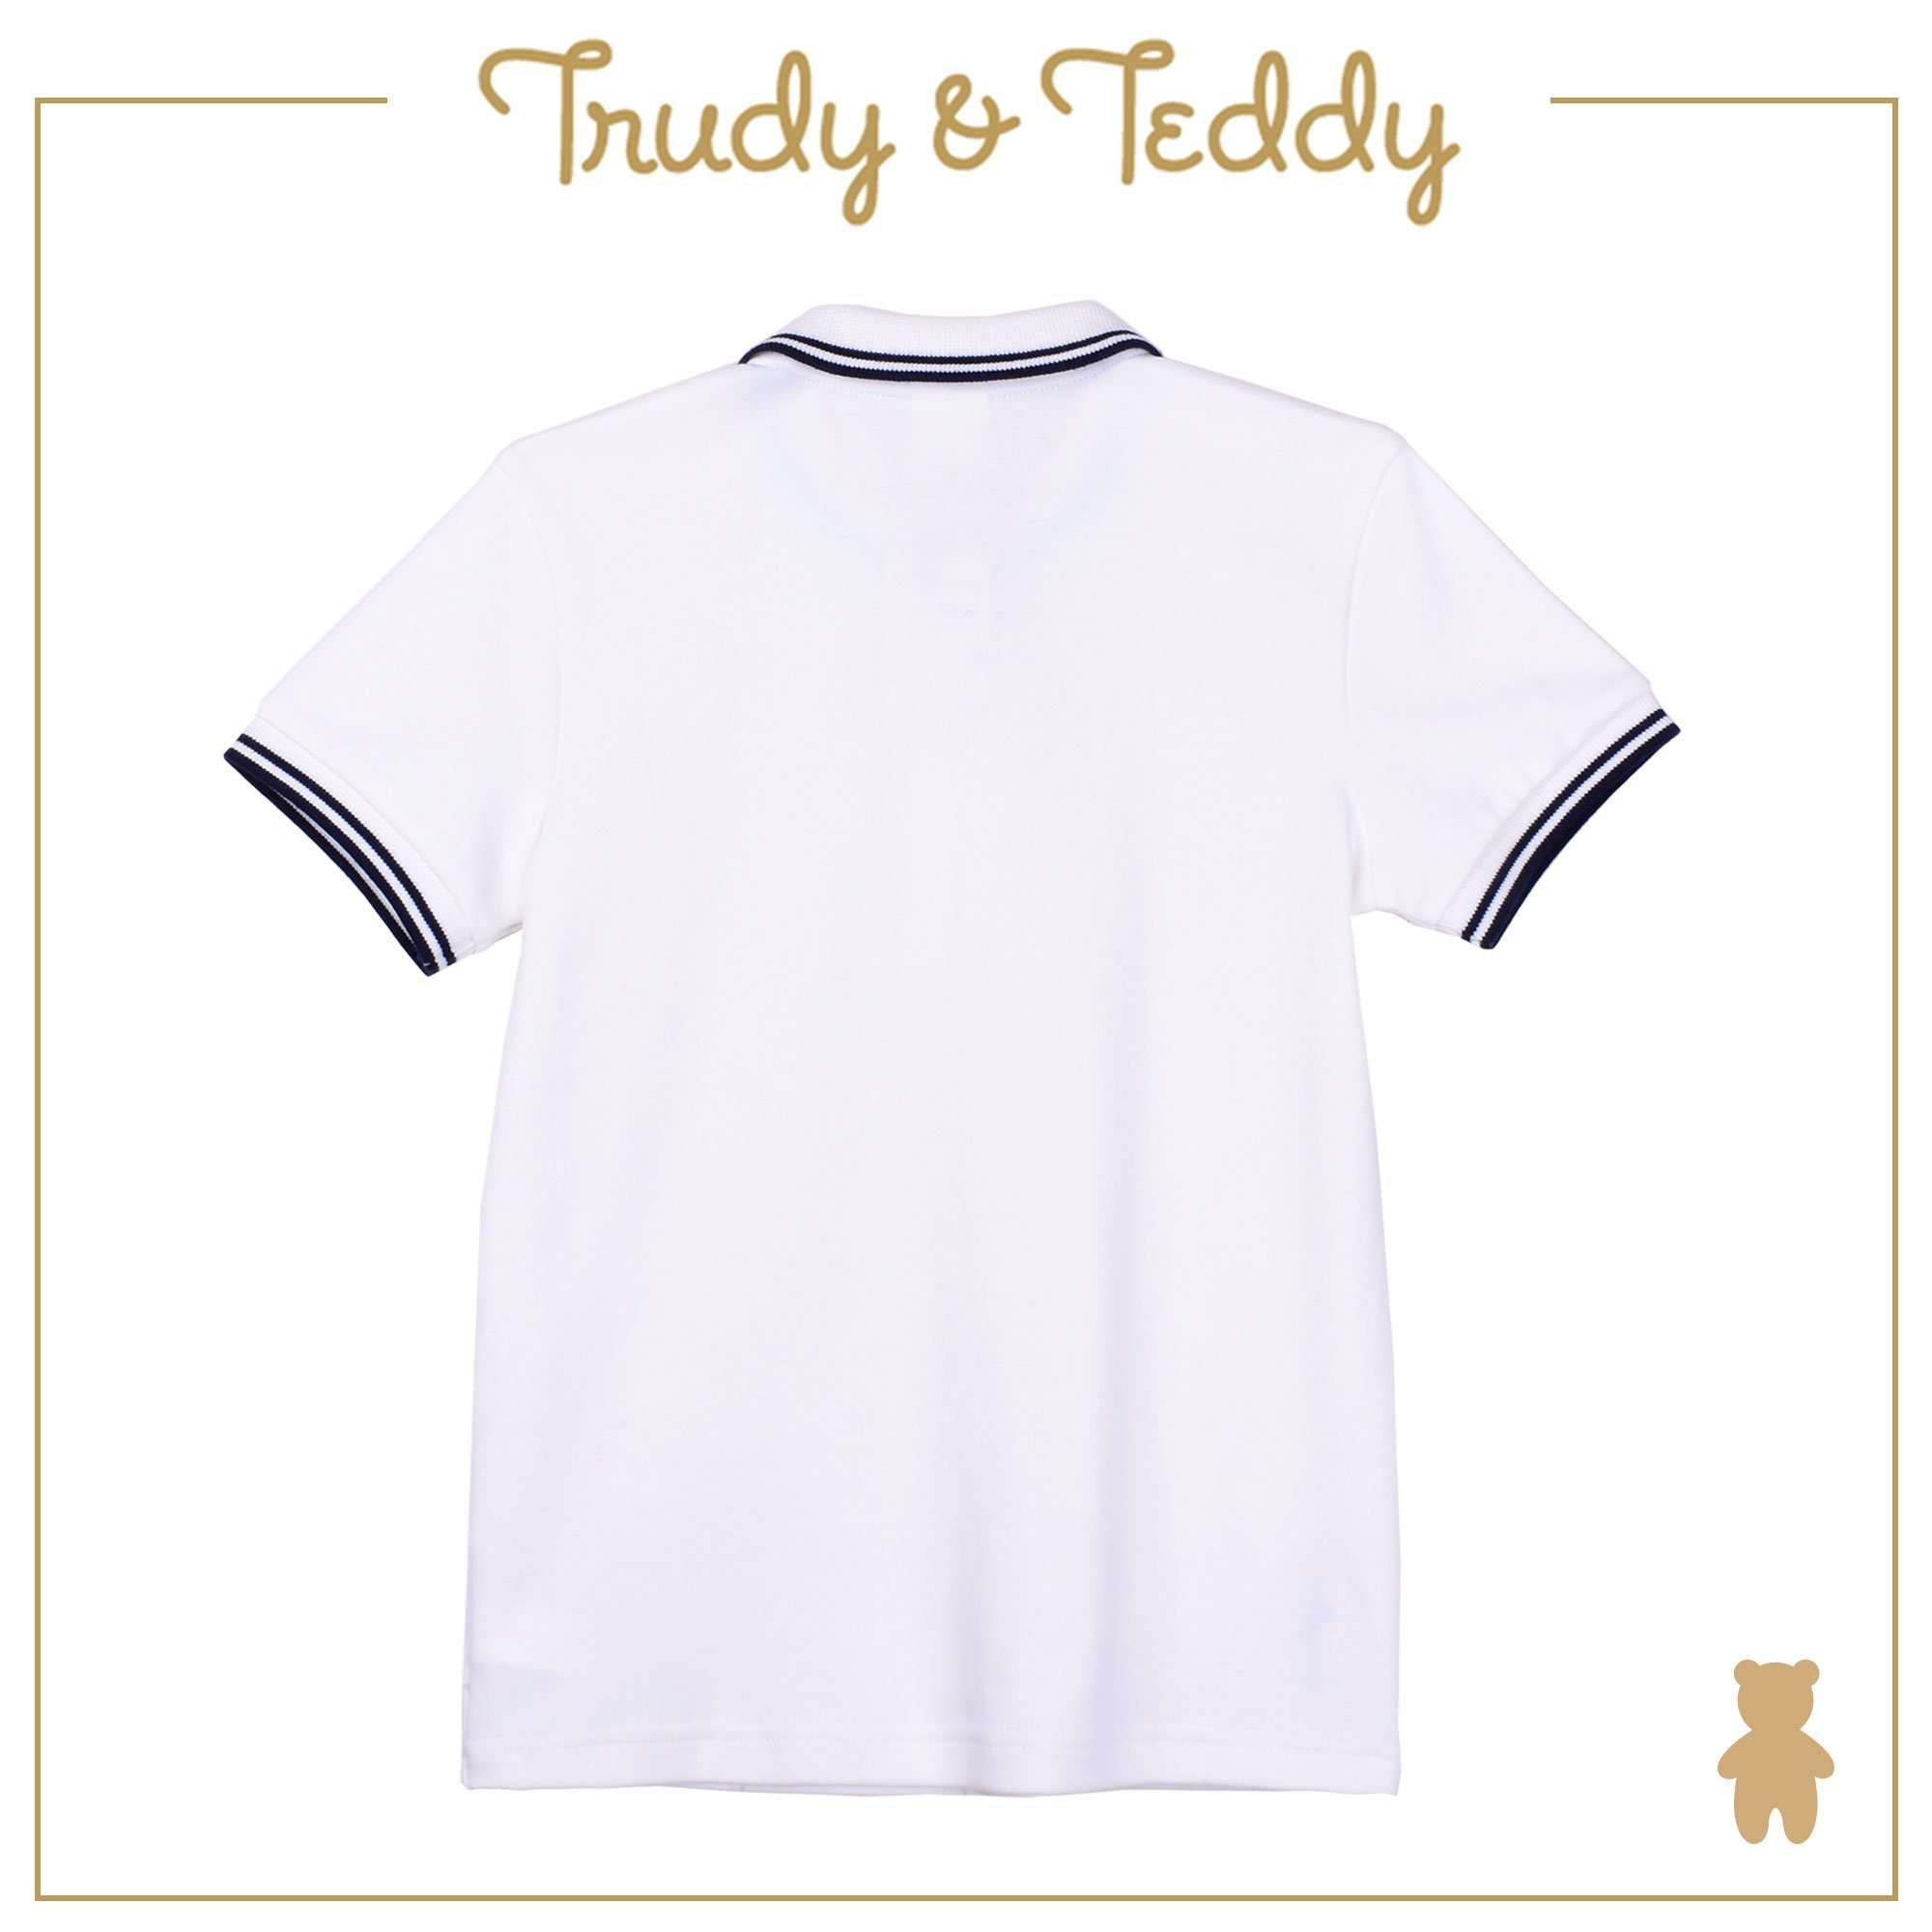 Trudy & Teddy Baby to Kid Boy Short Sleeve Collar Tee - White T921001-1210-W5 : Buy Trudy & Teddy online at CMG.MY